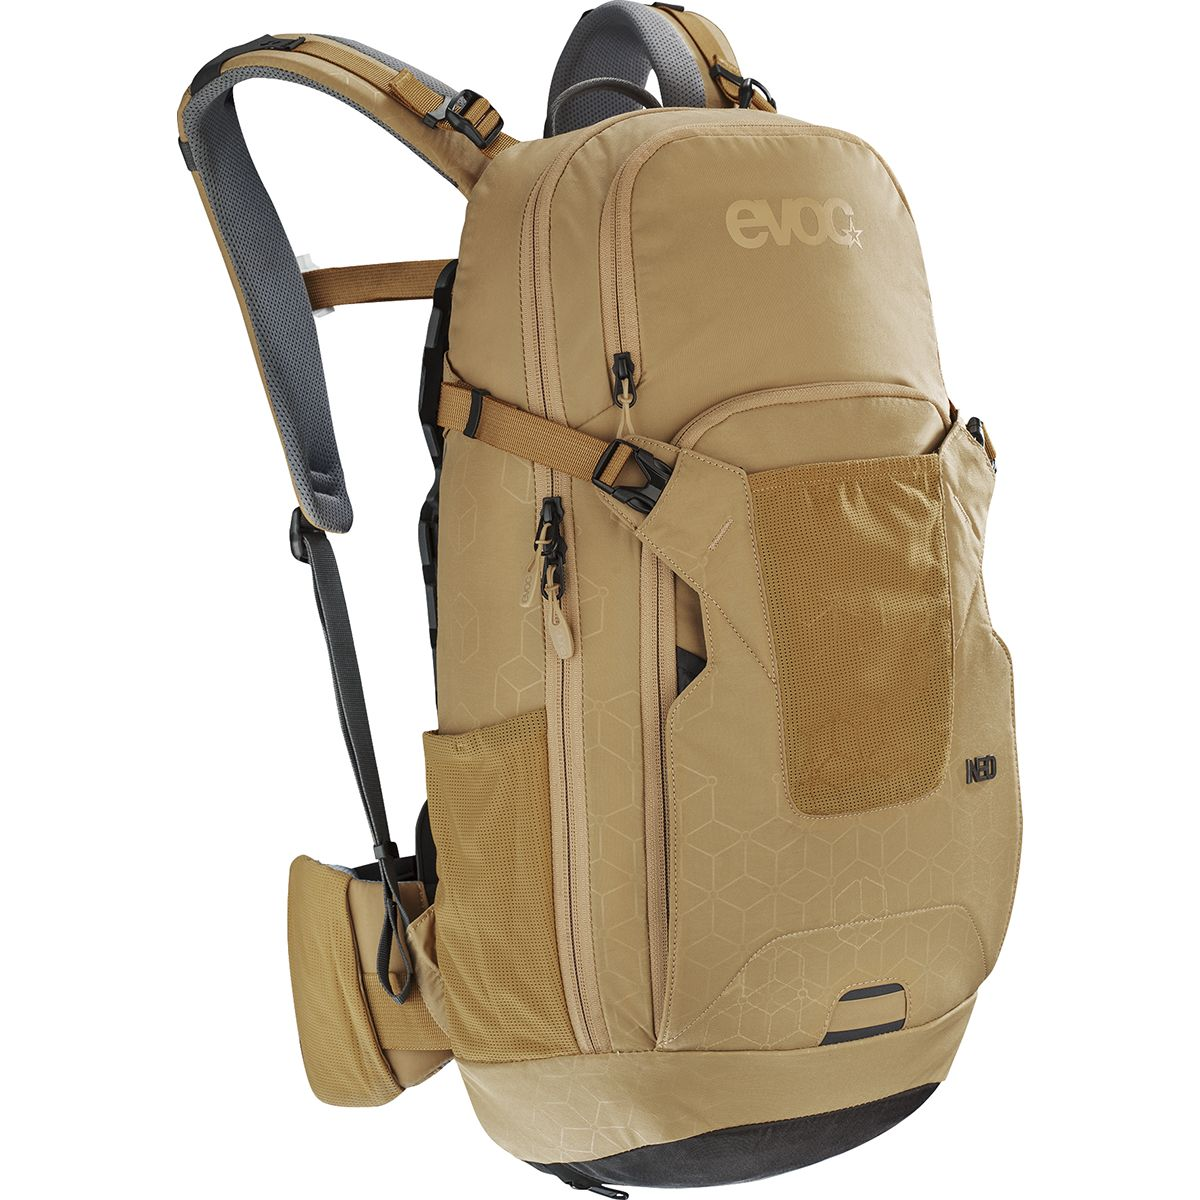 NEO 16L protector backpack